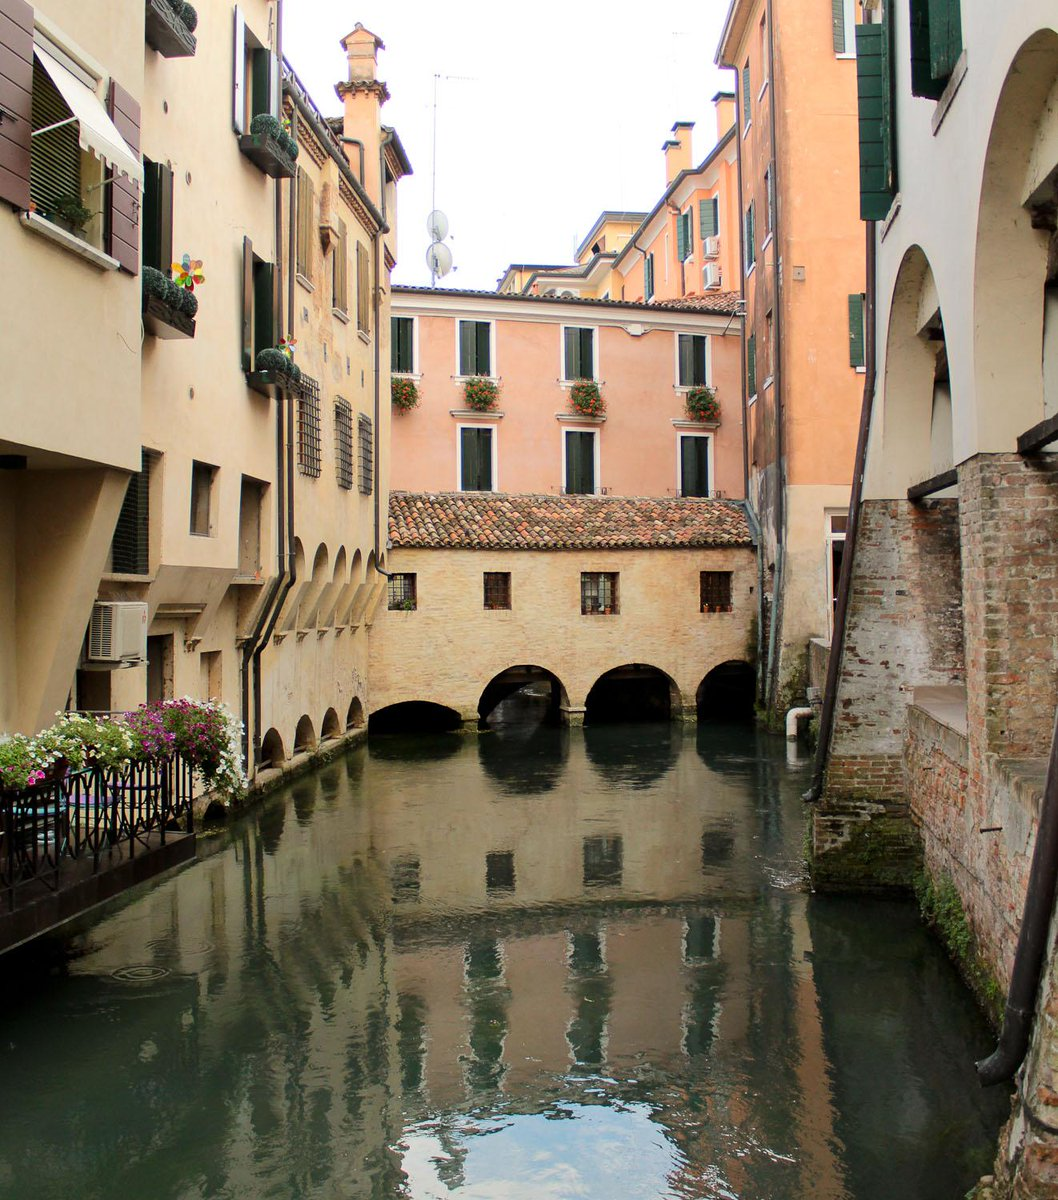 New blog post on what to do in Treviso (apart from looking for an undiscovered Venice) - http://t.co/k3vLFHdvoL http://t.co/UM5IMgbVJX